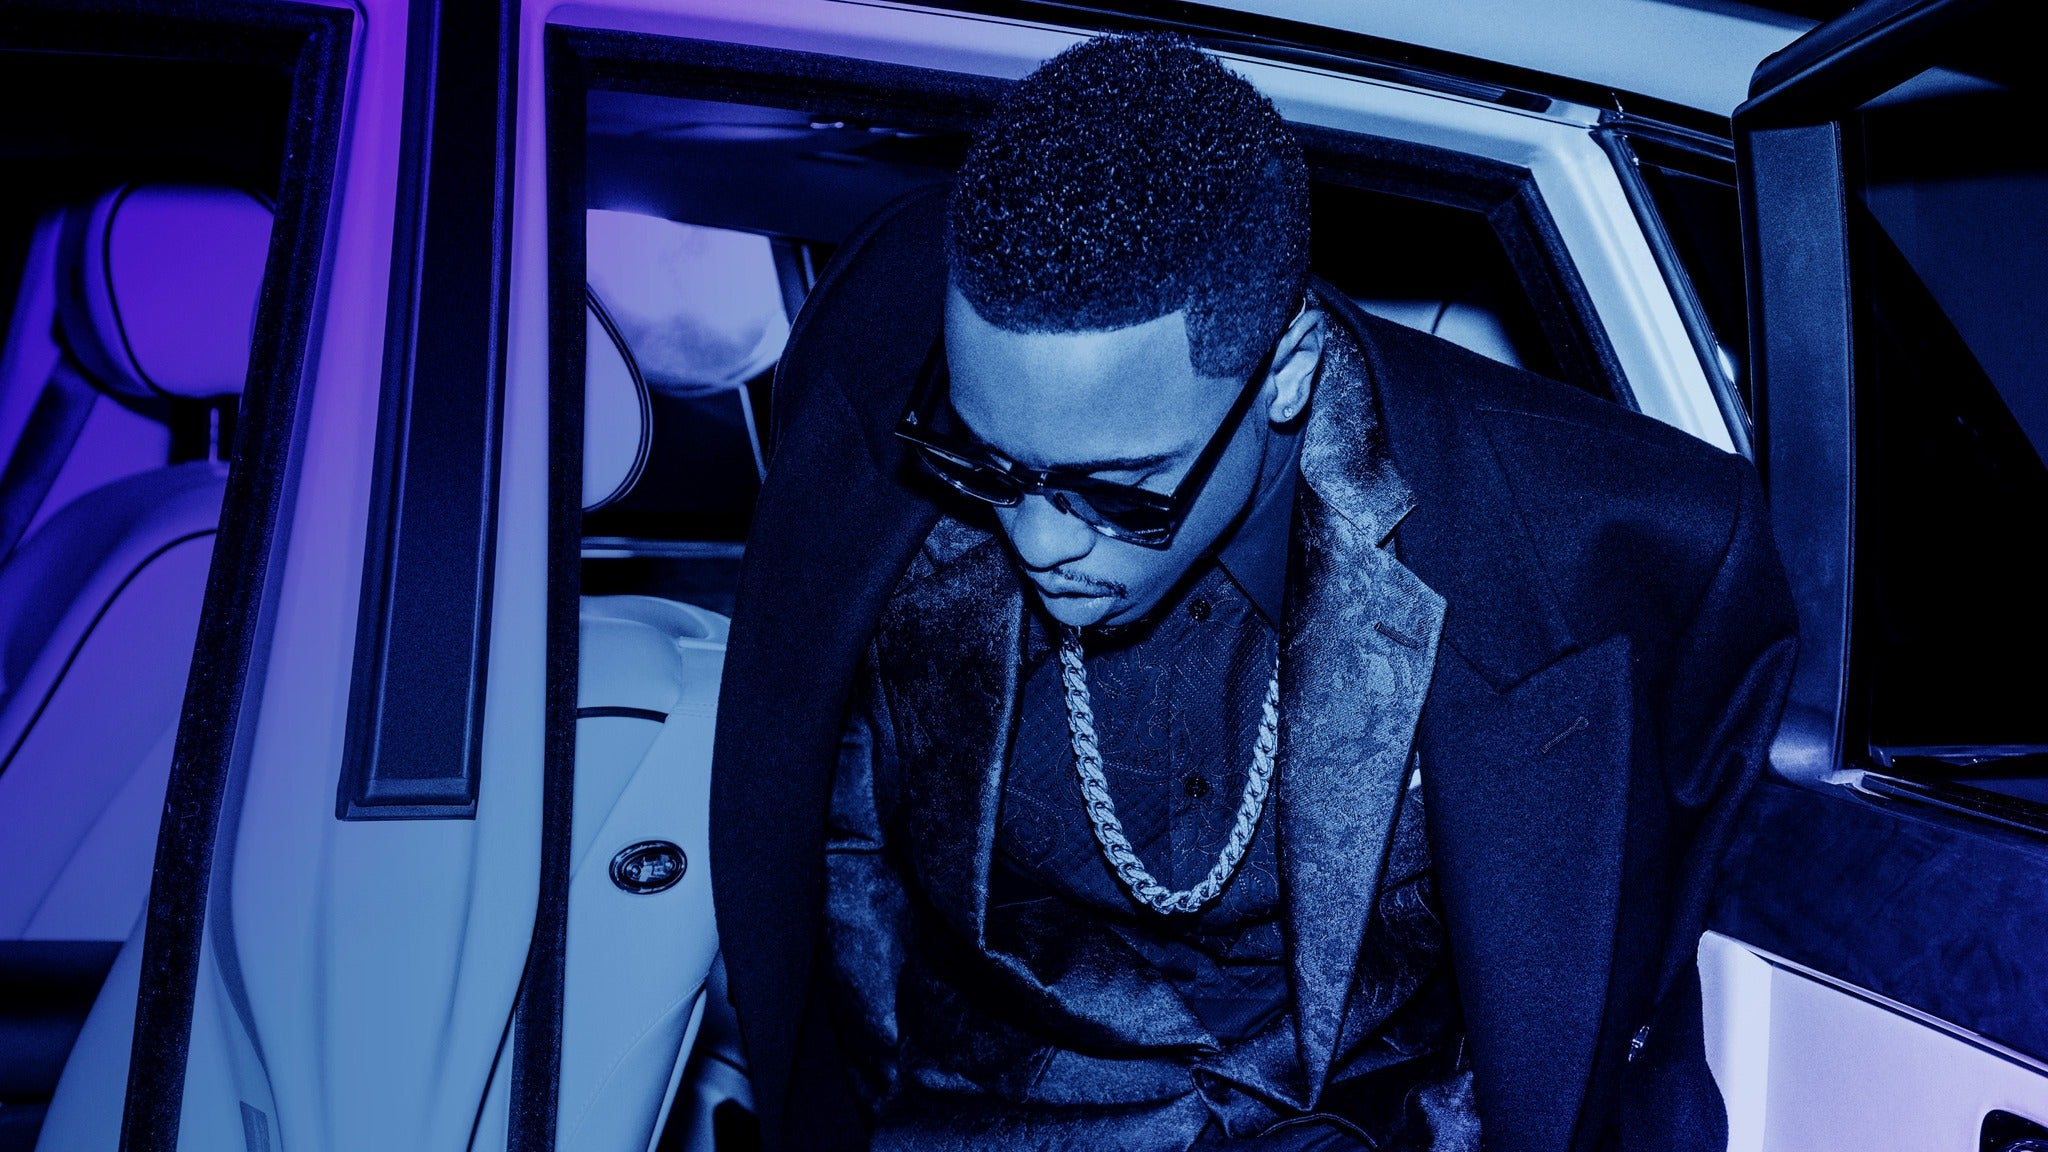 Jeremih at Braden Auditorium